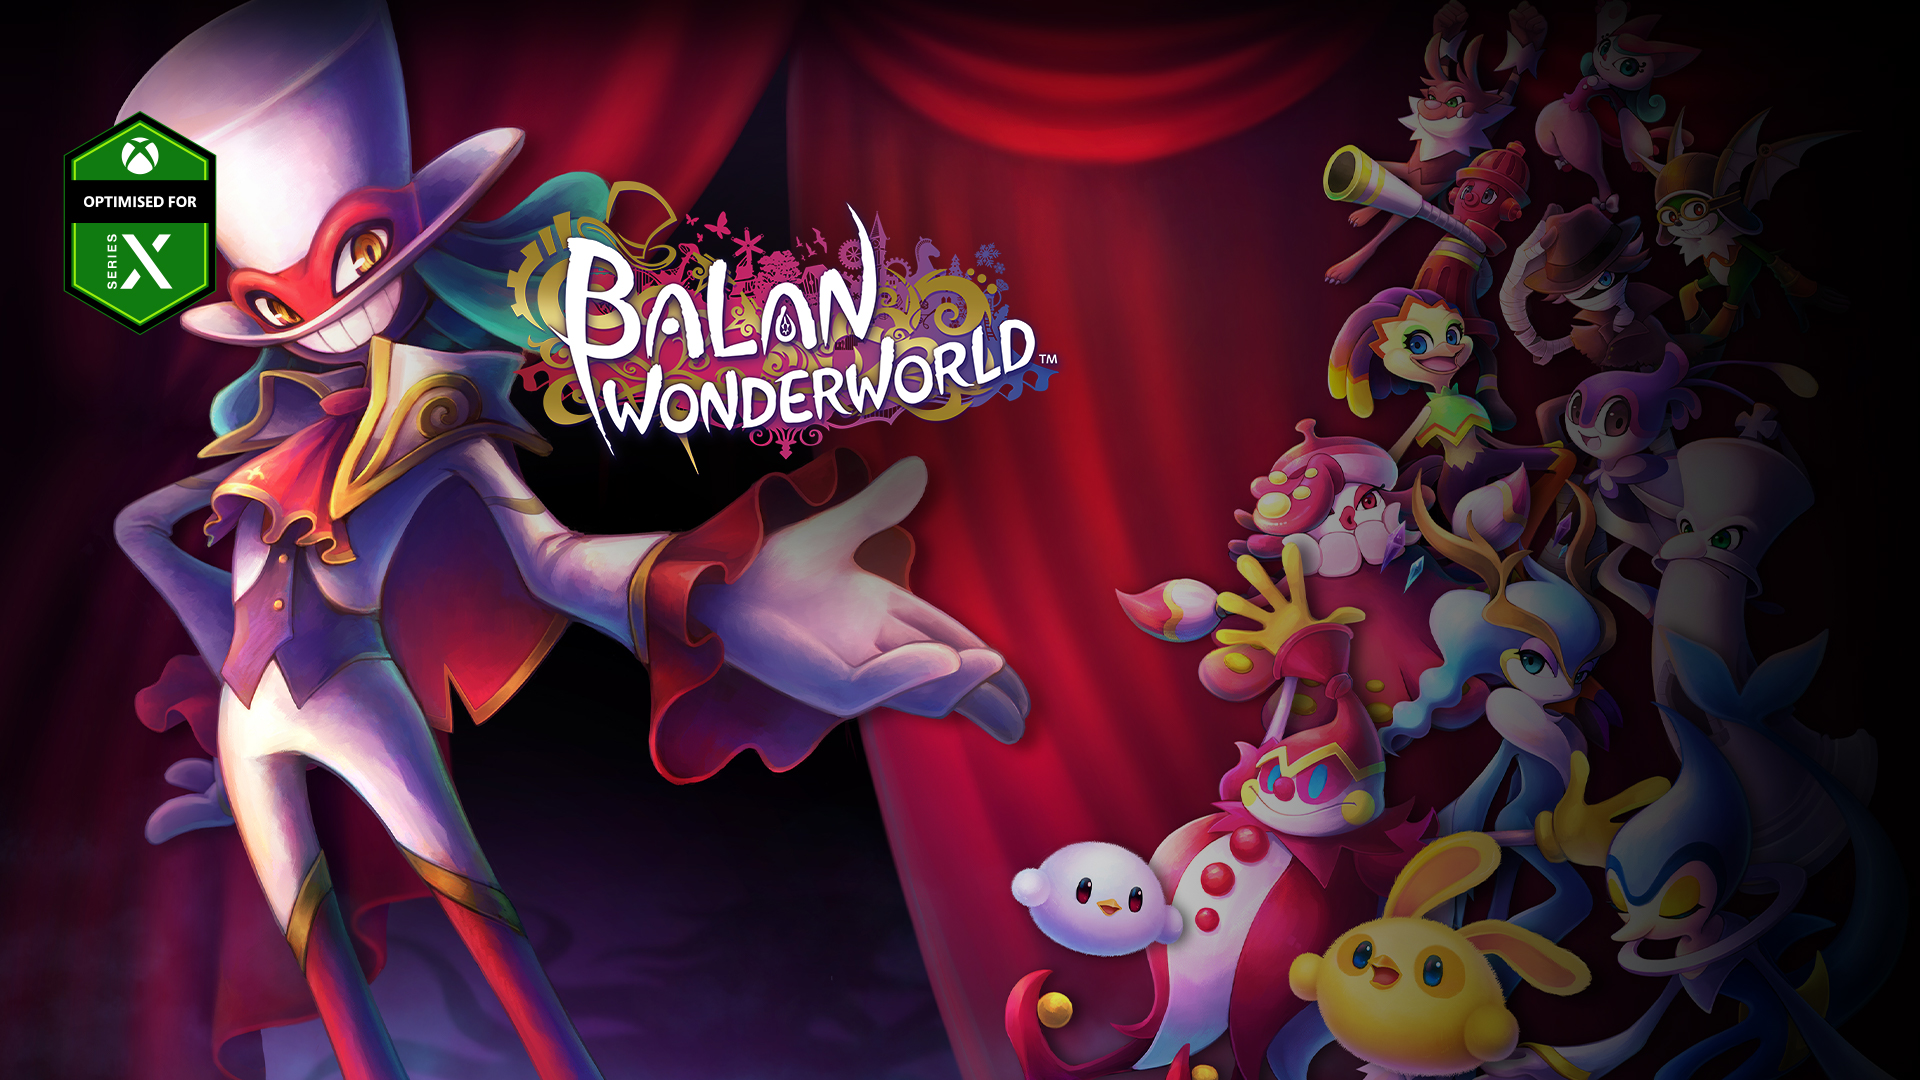 Optimised for Series X, Balan Wonderworld, A well-dressed demon gestures to a group of colourful creatures.